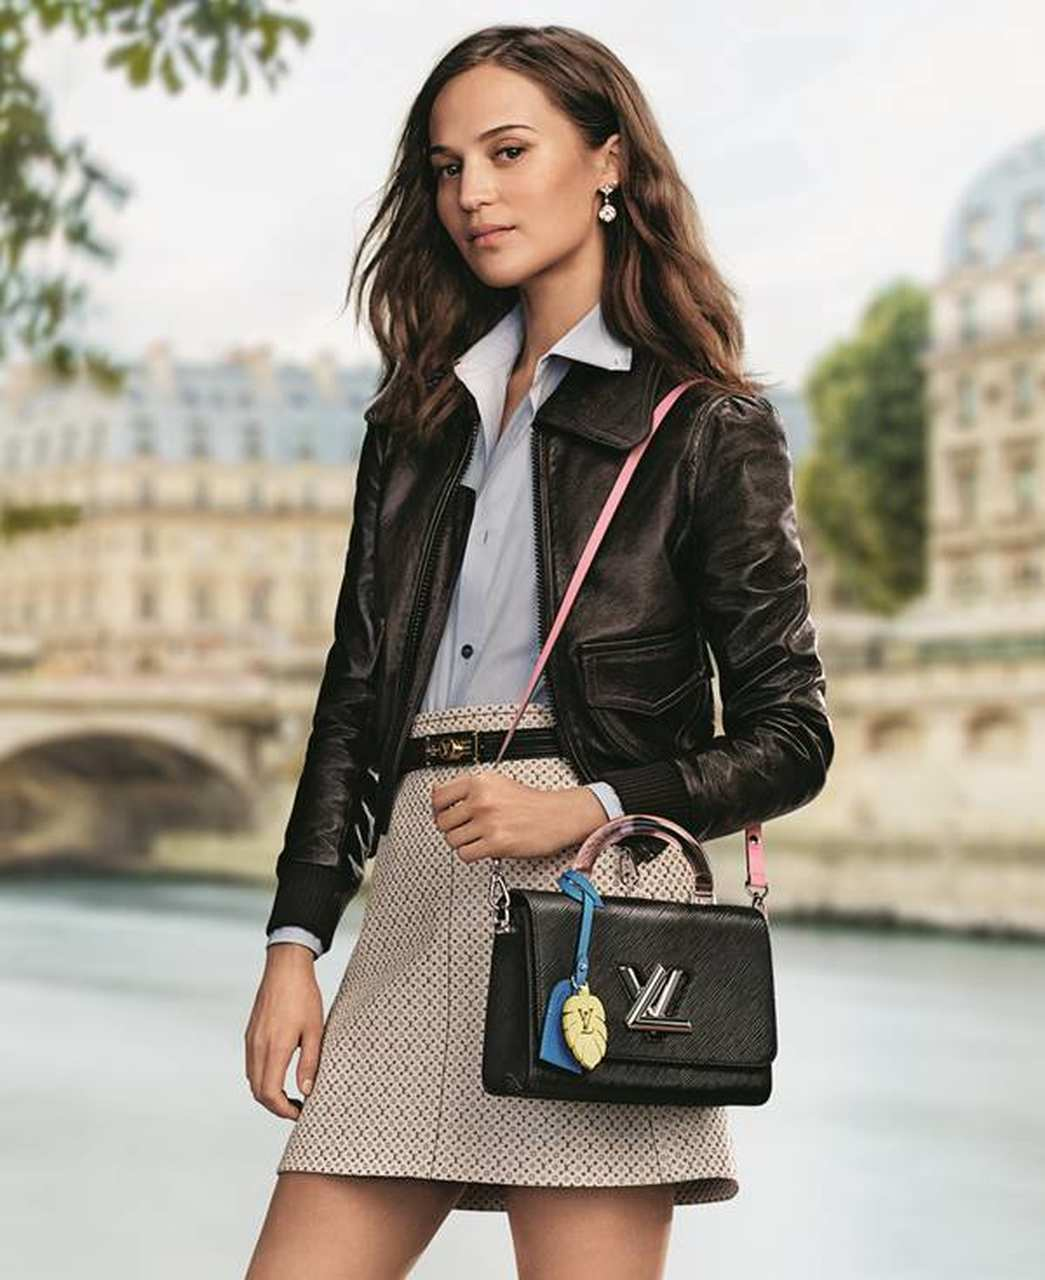 Alicia Vikander, in the campaign the Louis Vuitton